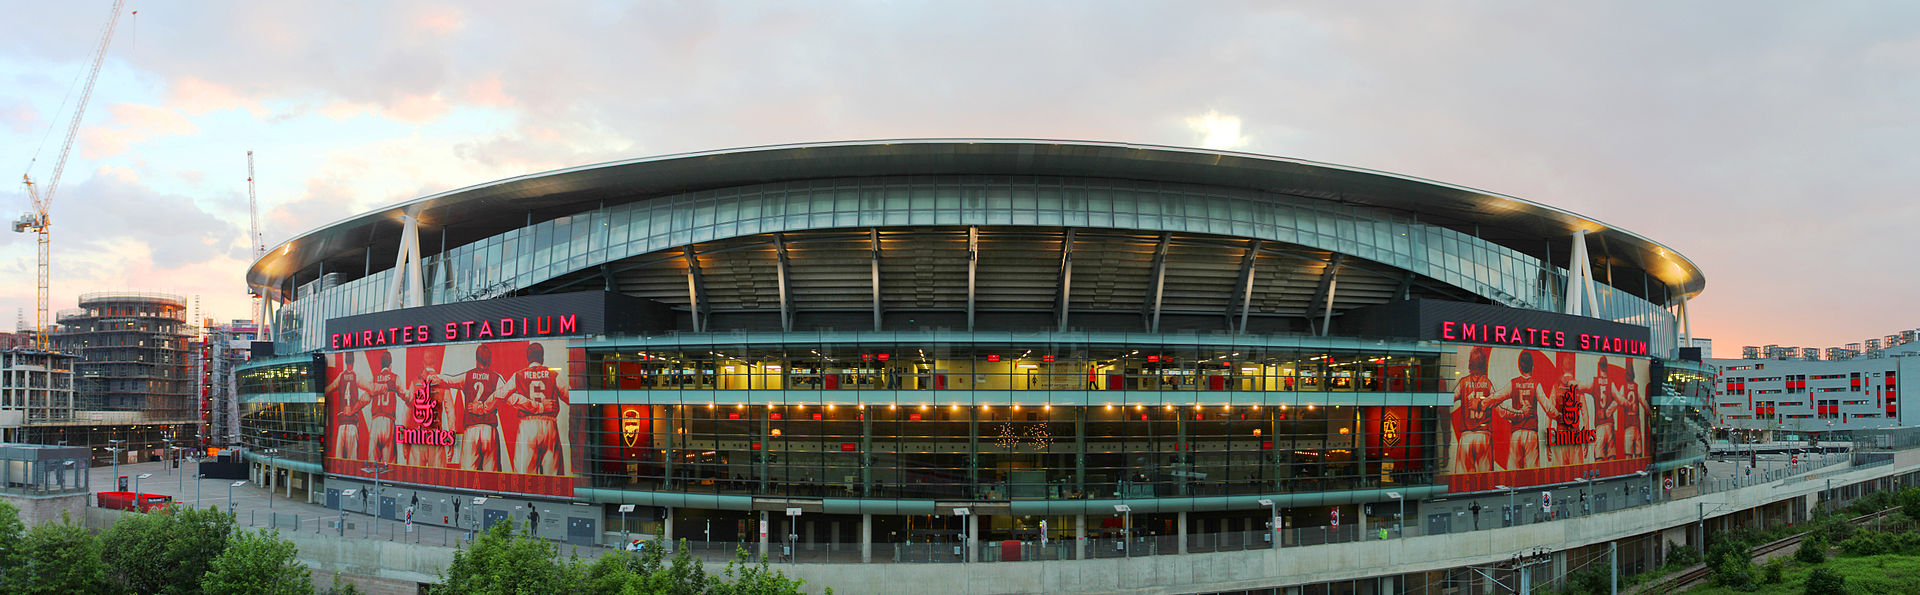 Emirates_Stadium_east_side_at_dusk